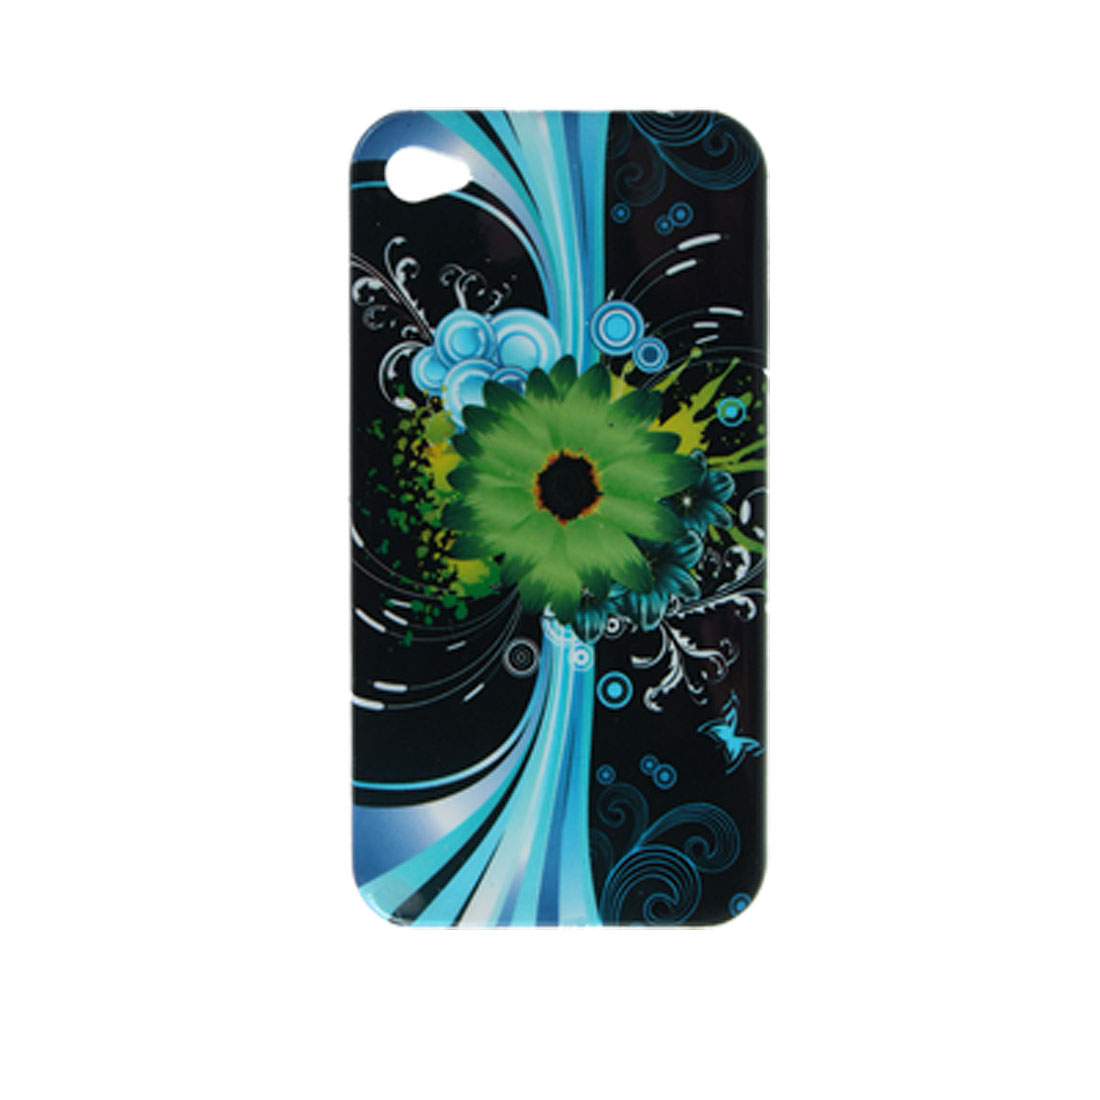 Green Daisy Pattern Hard Plastic Back Case for iPhone 4 4G